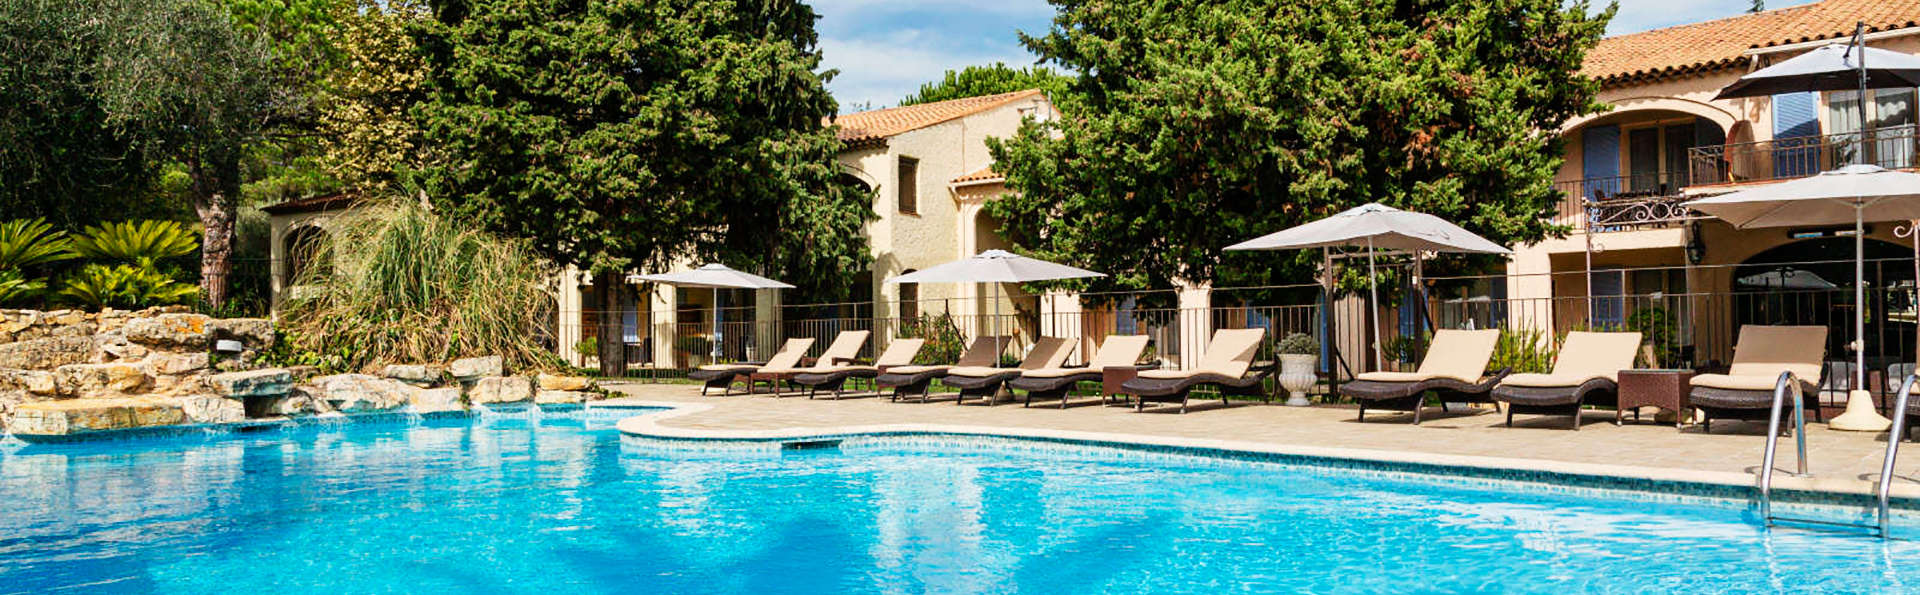 Hôtel Spa la Lune de Mougins - EDIT_pool3.jpg